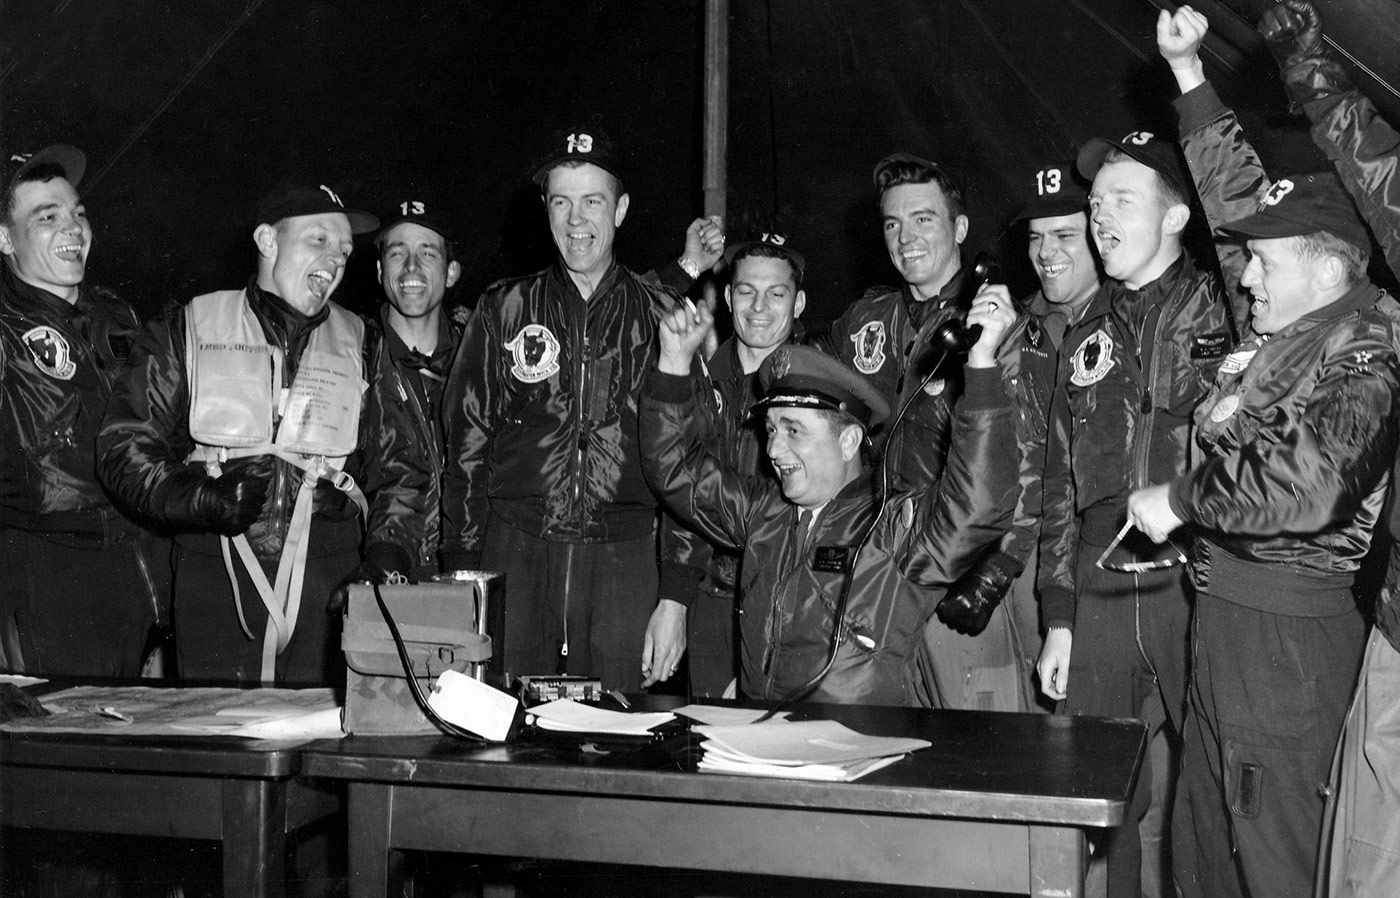 Members of the USAF 4708th Defense Wing at Otis Air Force Base, 1954